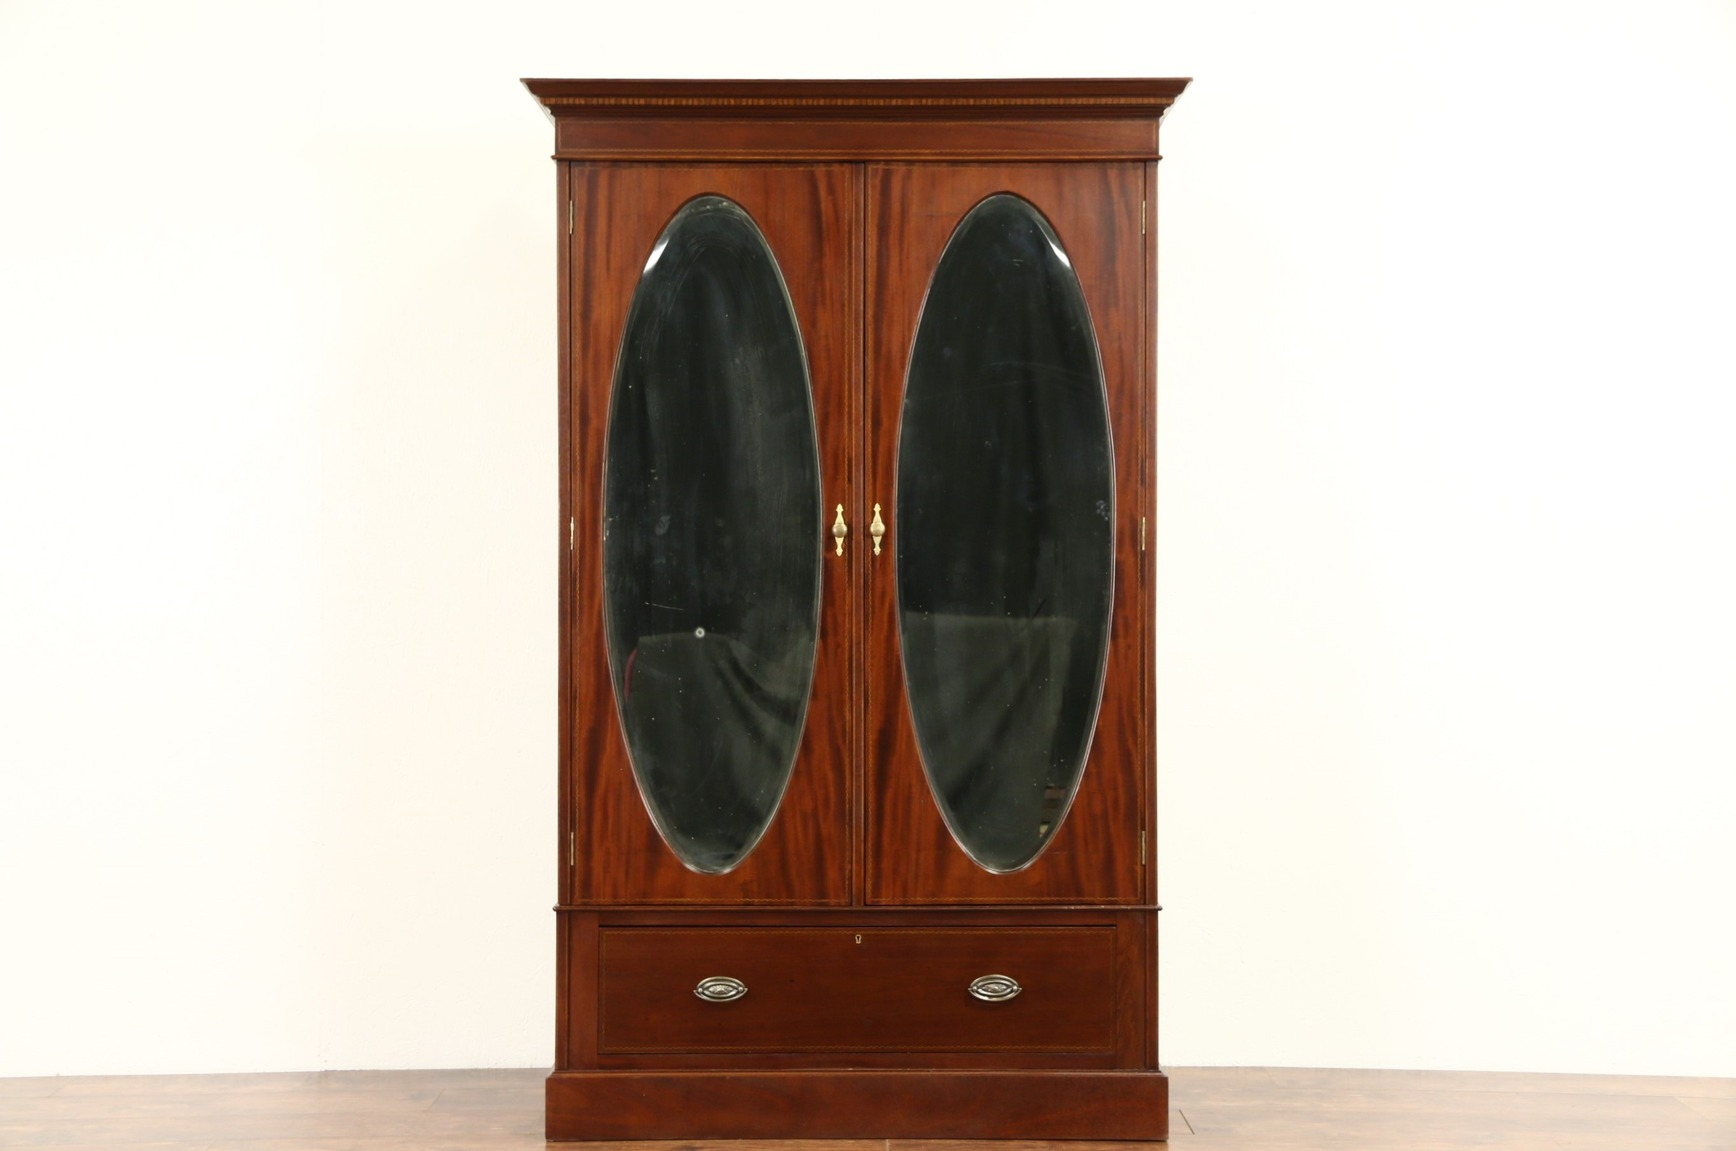 SOLD - English 1910 Antique Armoire or Wardrobe Closet, Oval ...